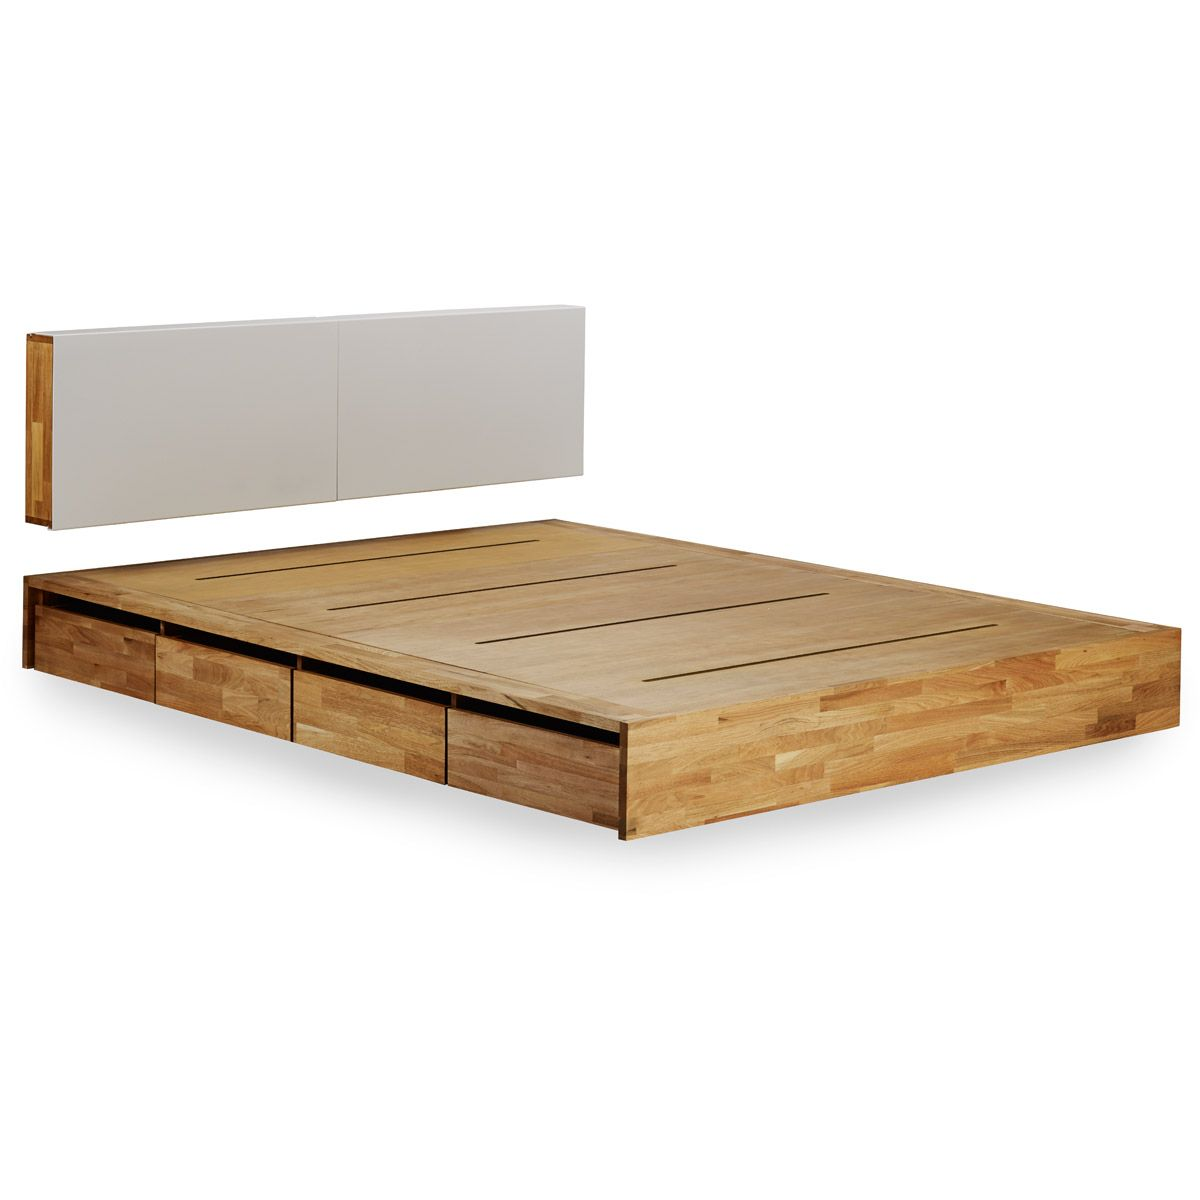 Incroyable LAX Platform Bed W/ Storage | MASH Studios | HORNE · Storage BedsStorage  HeadboardFull Size ...